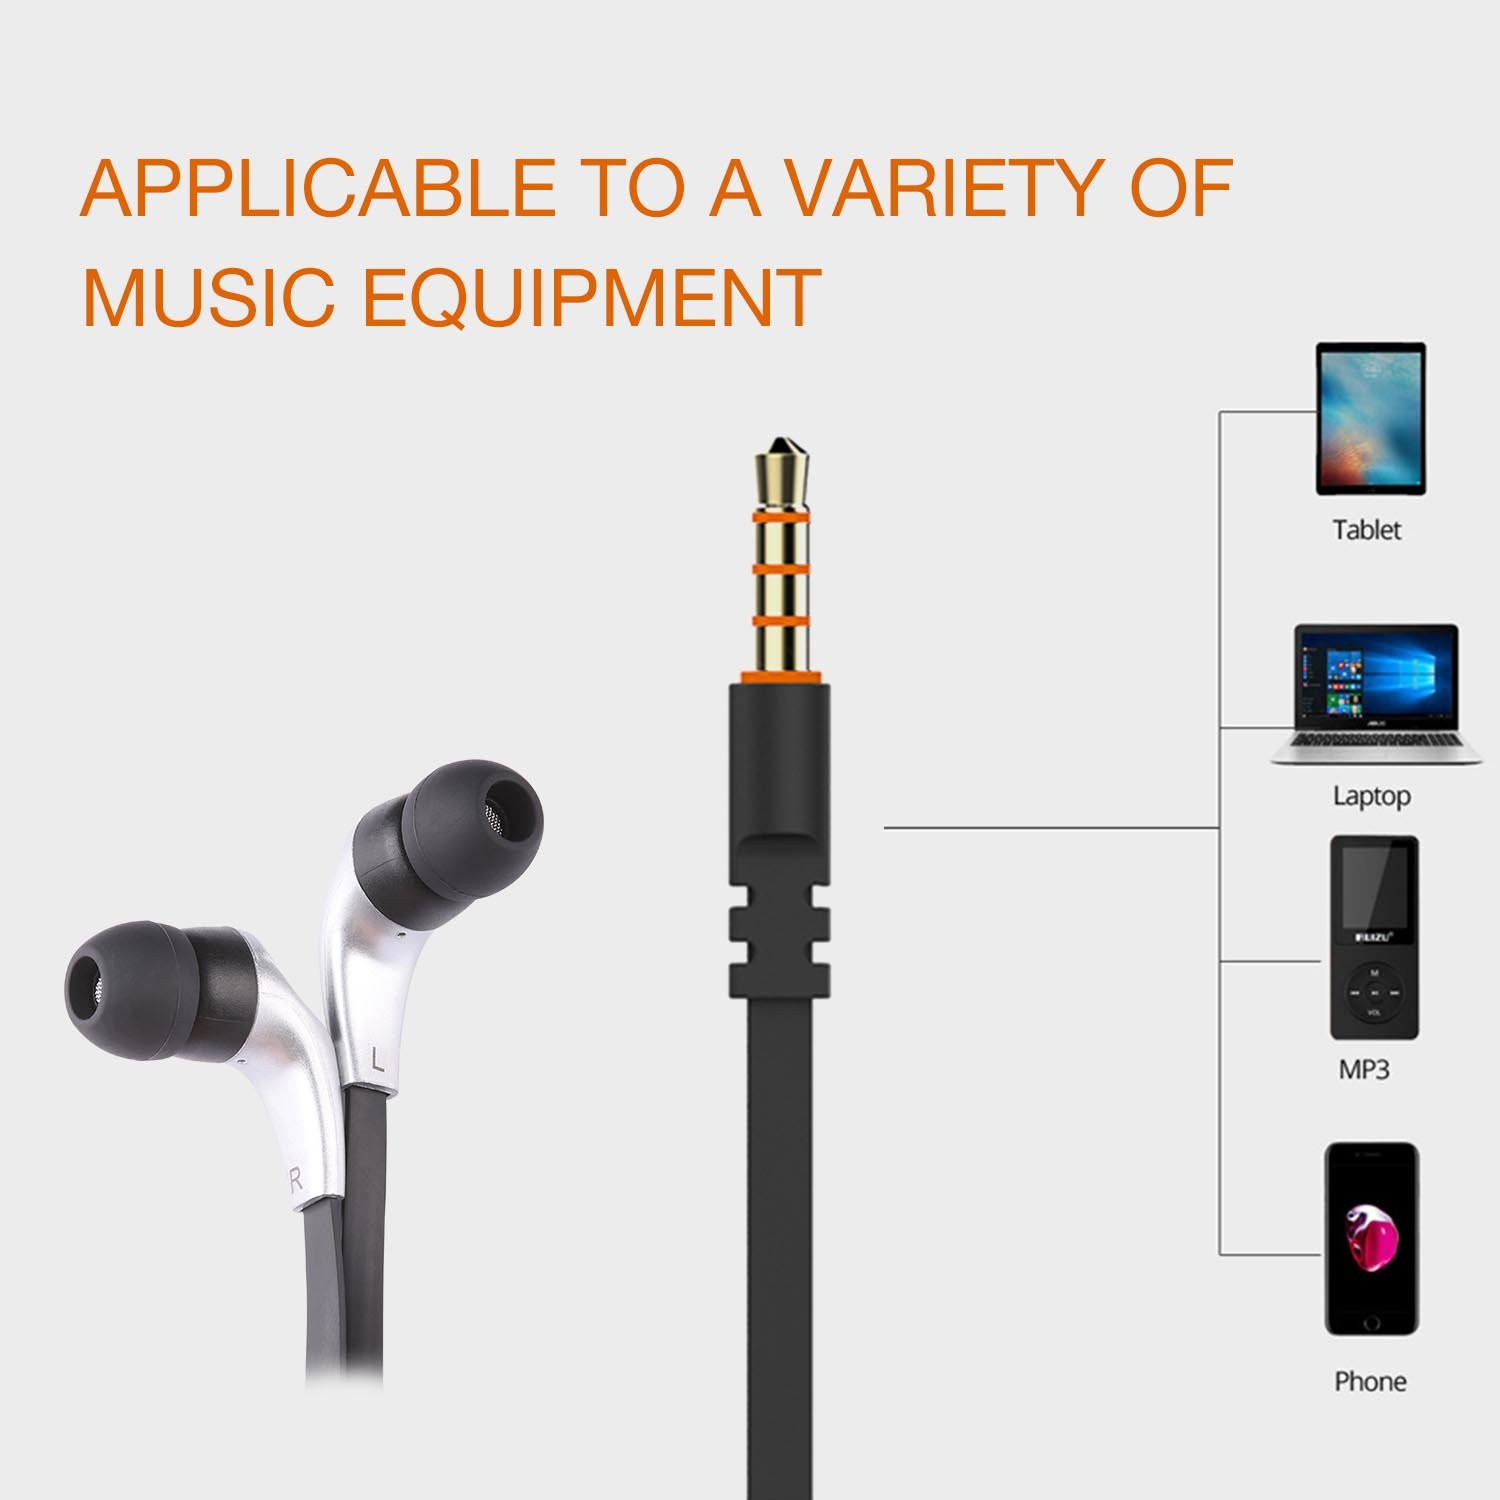 Earphones Fashion, In Ear Earbuds, Noise Isolating Lightweight Wired 3.5MM Headphones with Microphone Control, Stereo Earbuds For Ios and Android,Laptop and MP3/4 Music Players(Black/Silver)